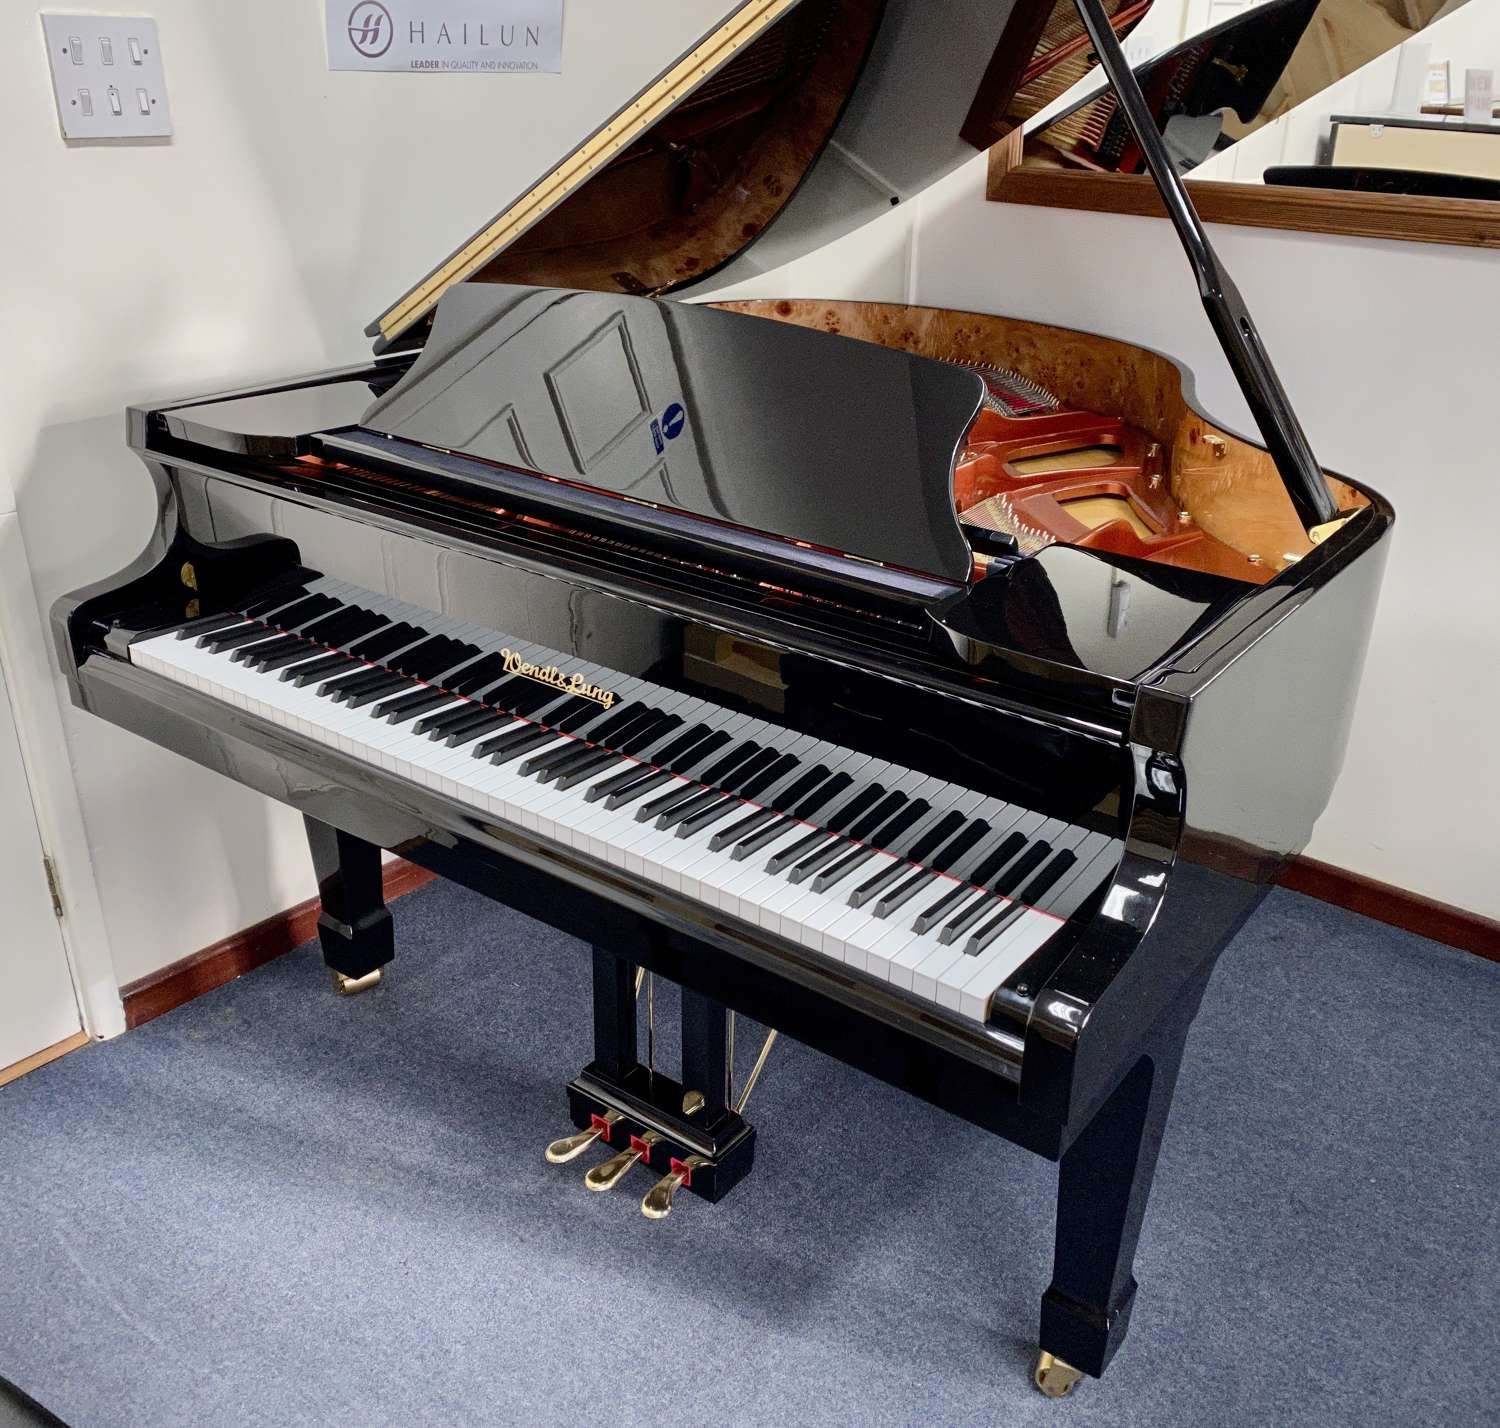 WENDL & LUNG Grand piano for sale 161cm